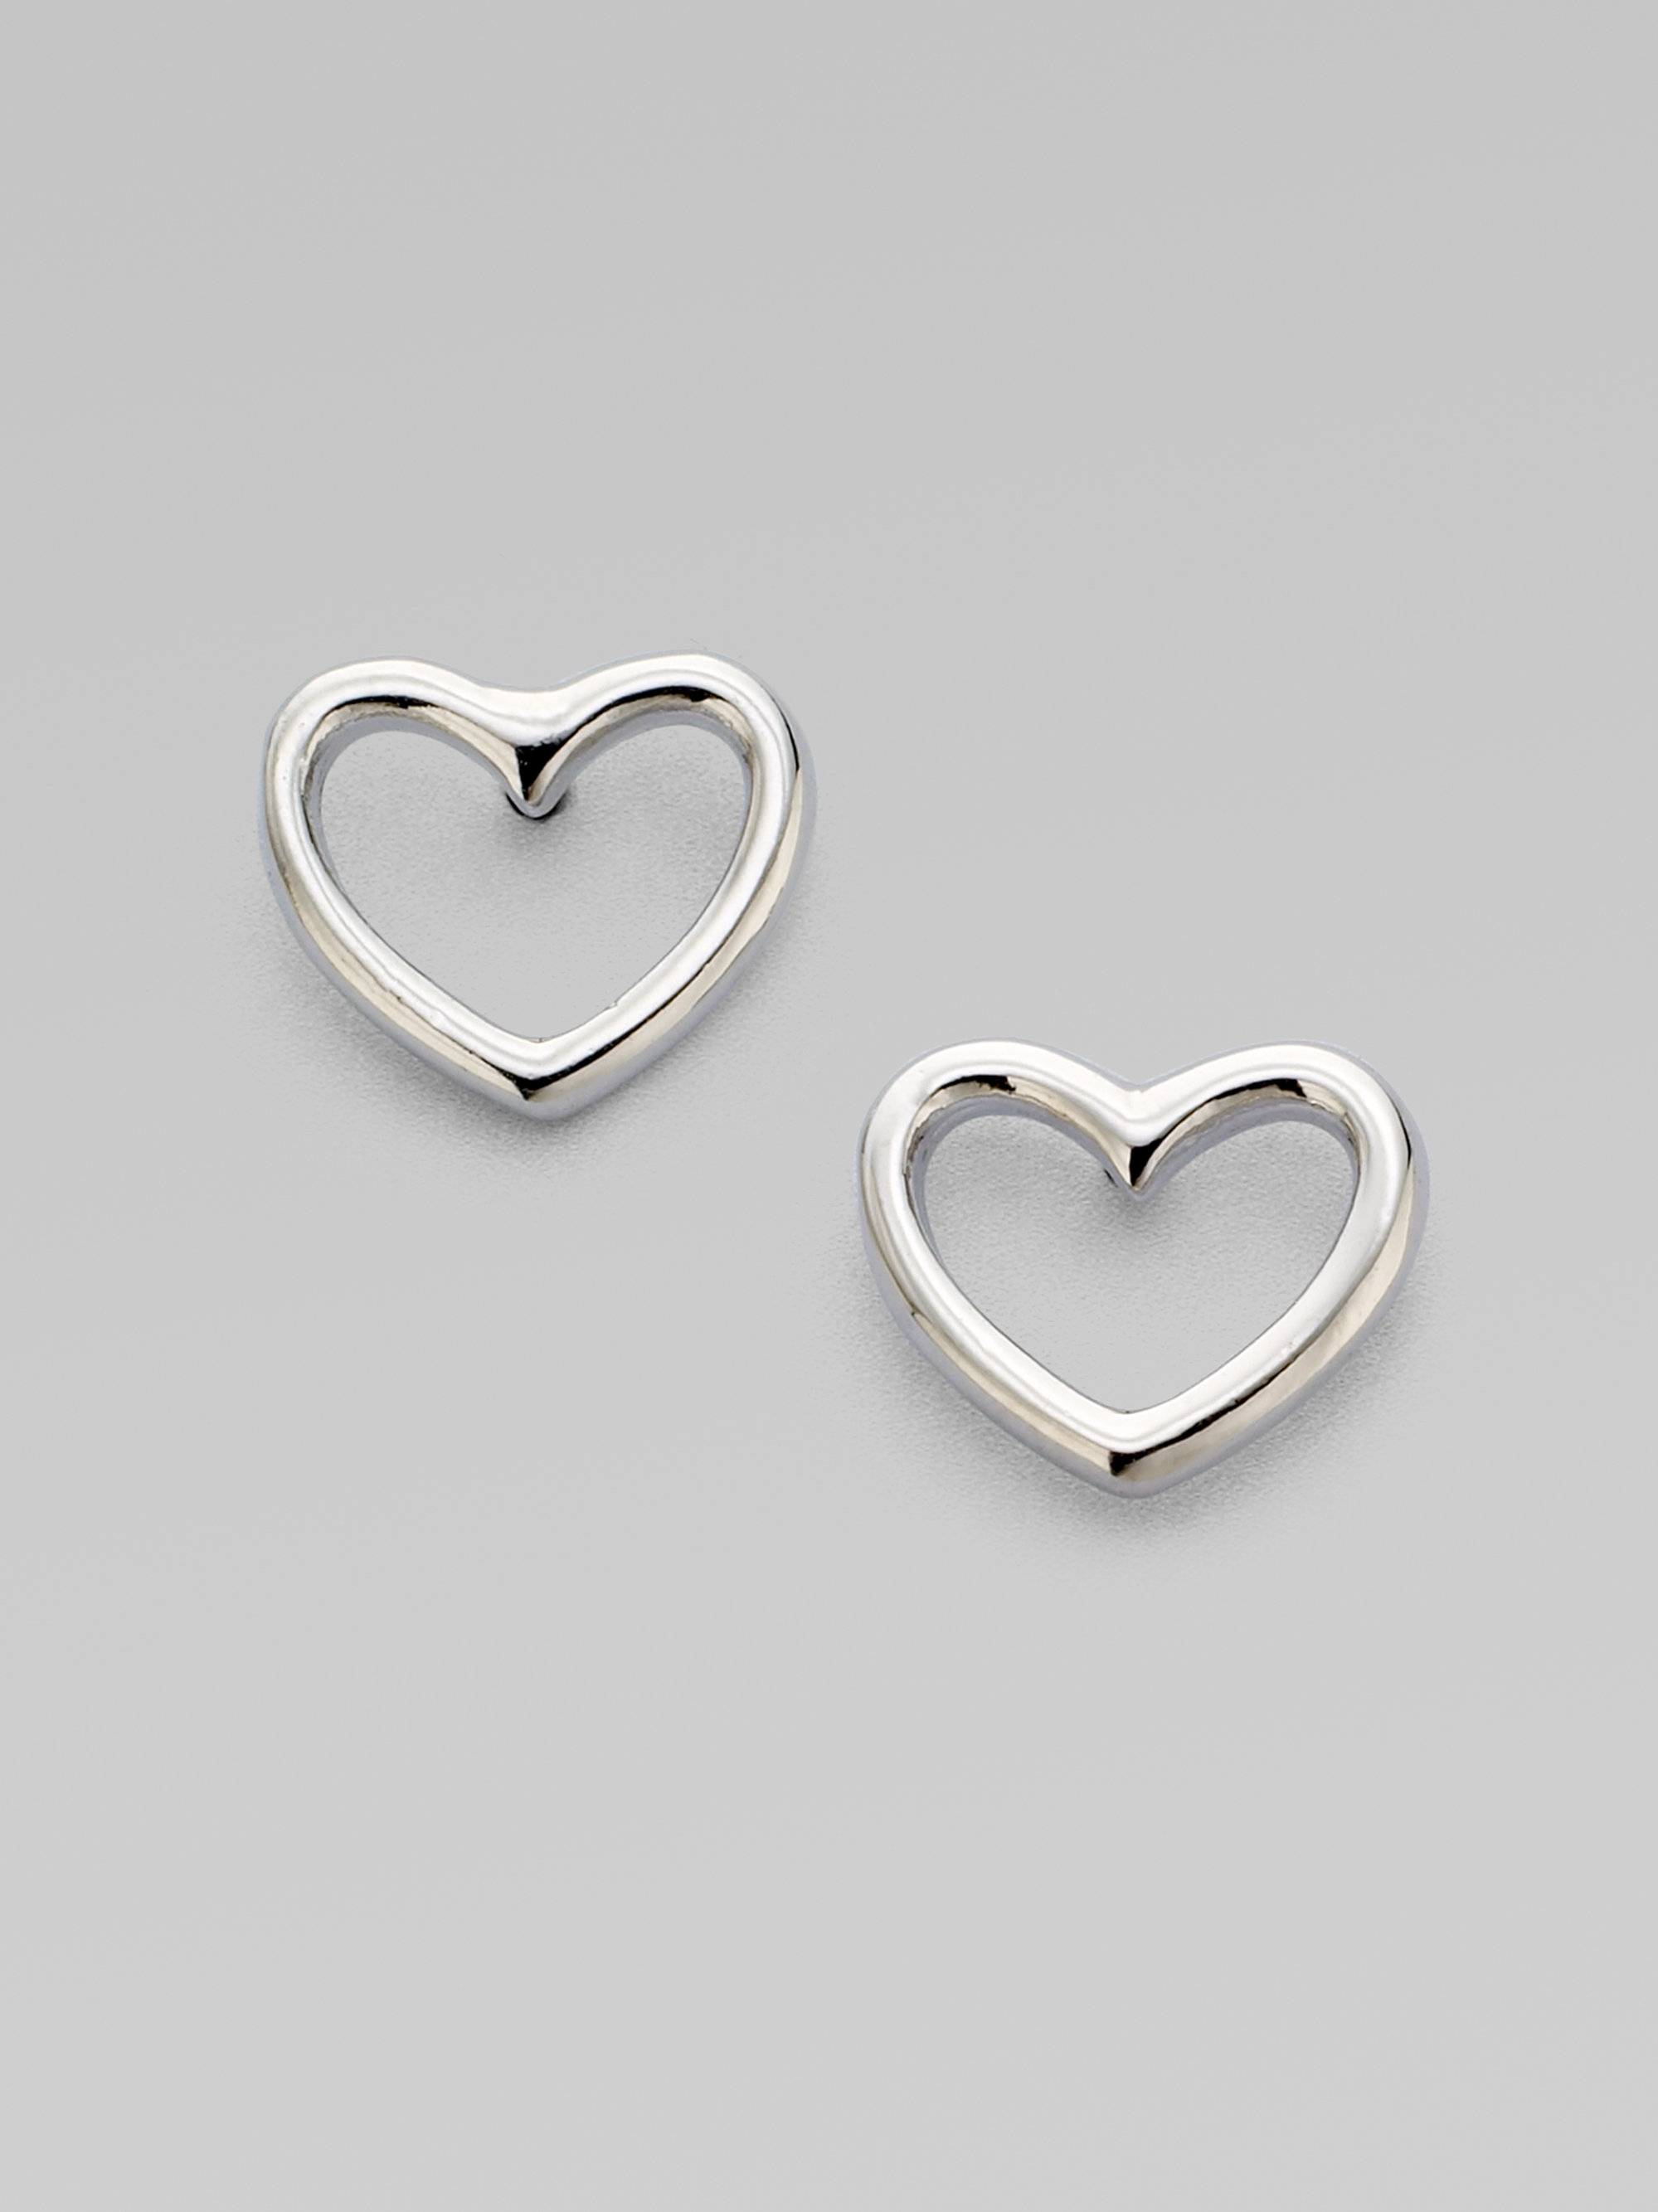 omicron alpha pin shape earrings heart pi symbol drop